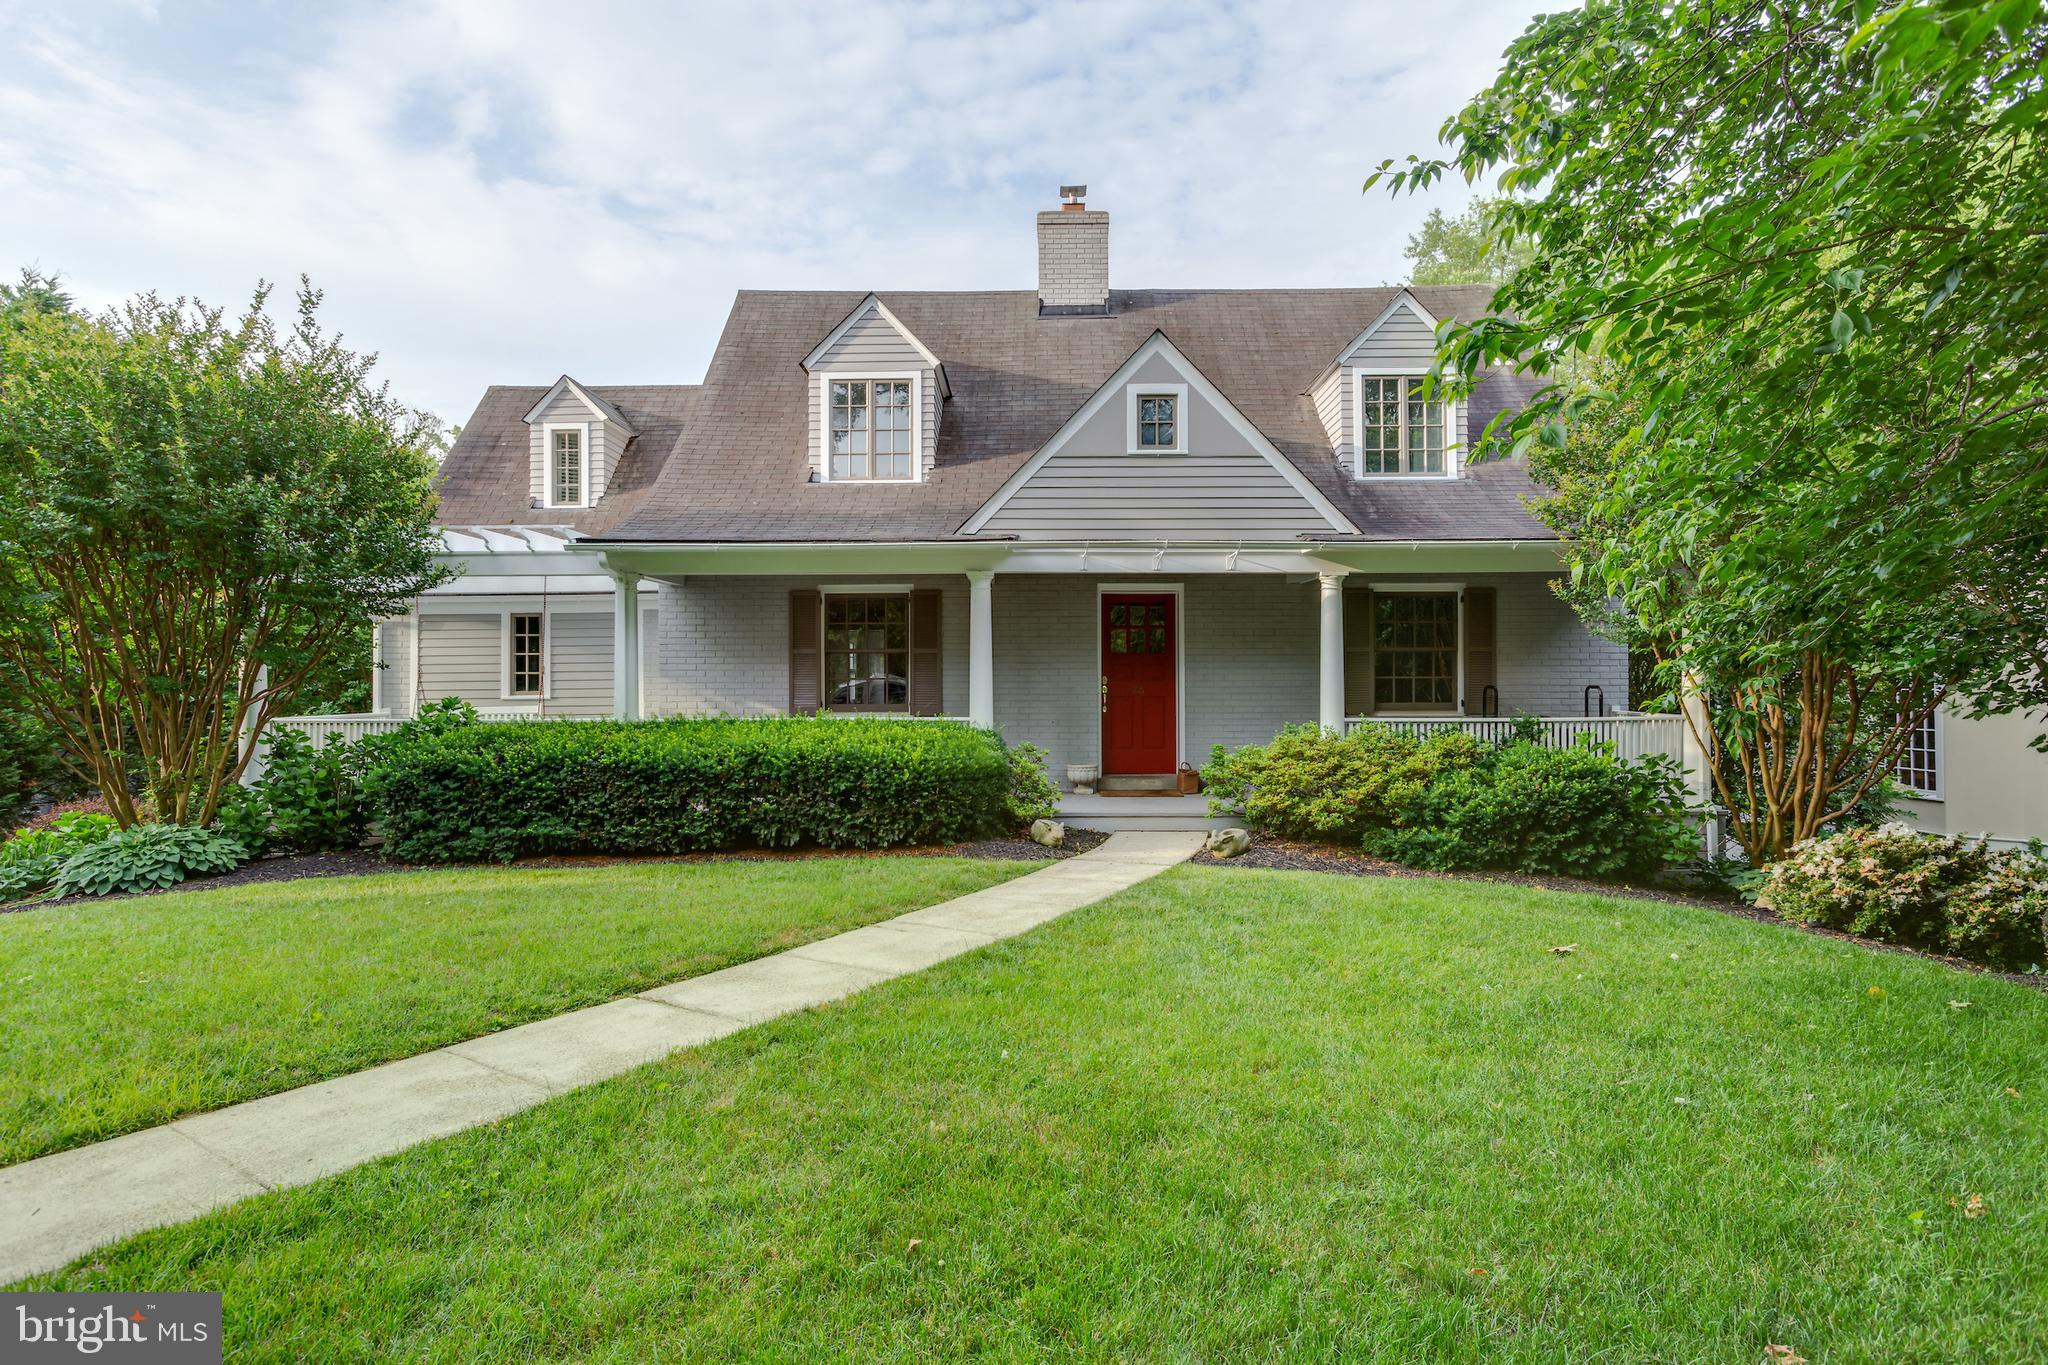 28 GRAFTON STREET, CHEVY CHASE, MD 20815